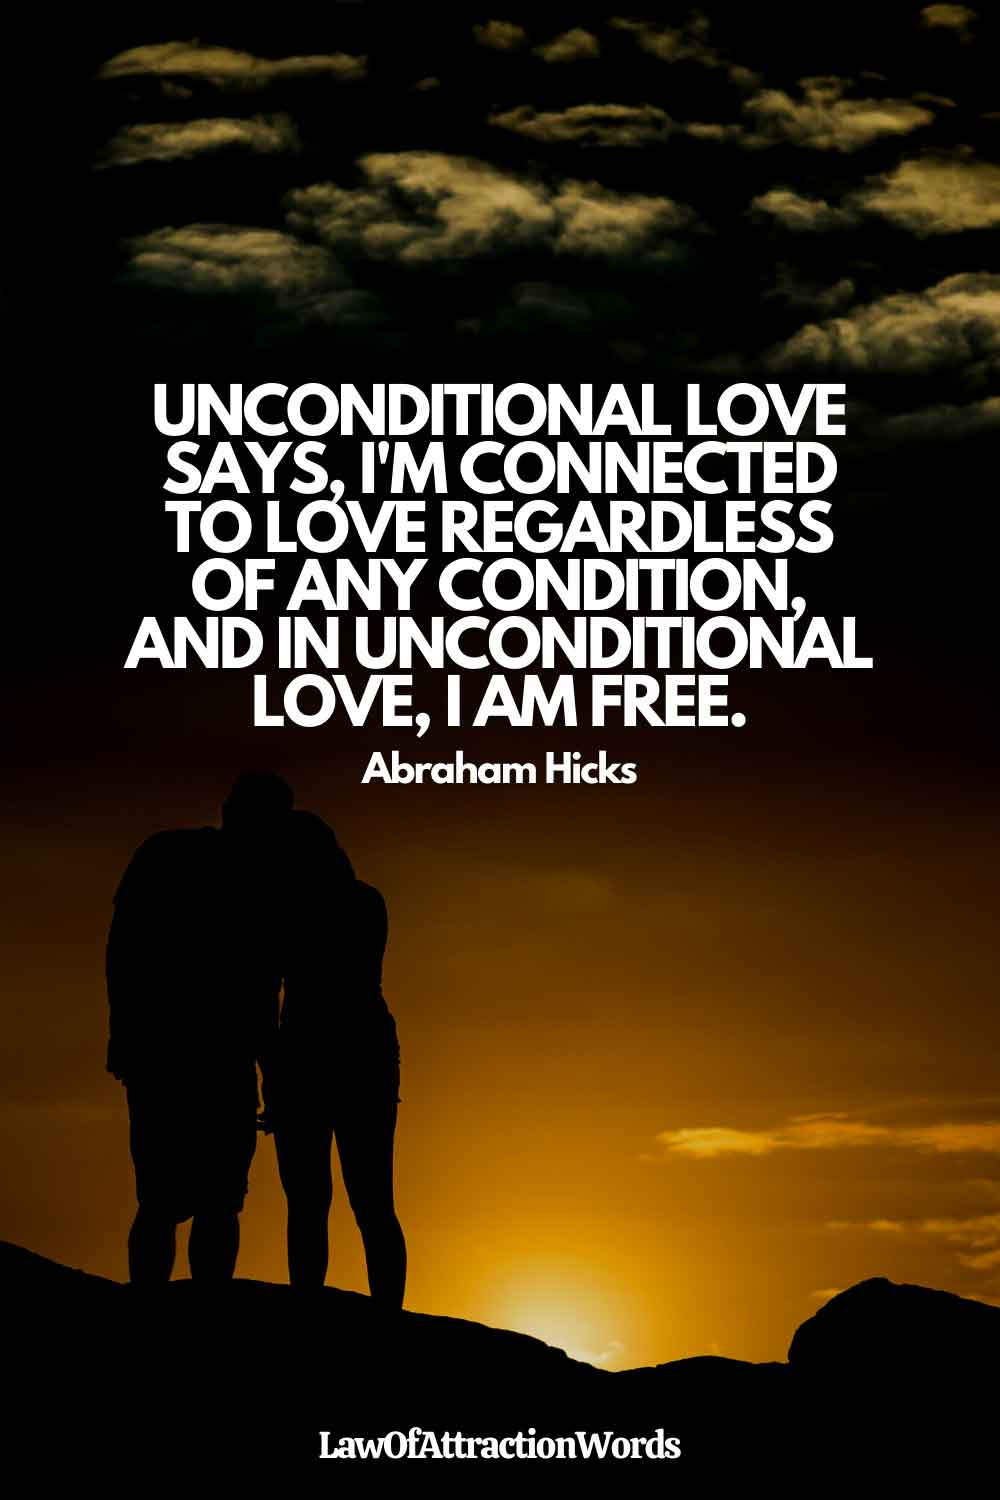 Wise Law Of Attraction Quotes About Love